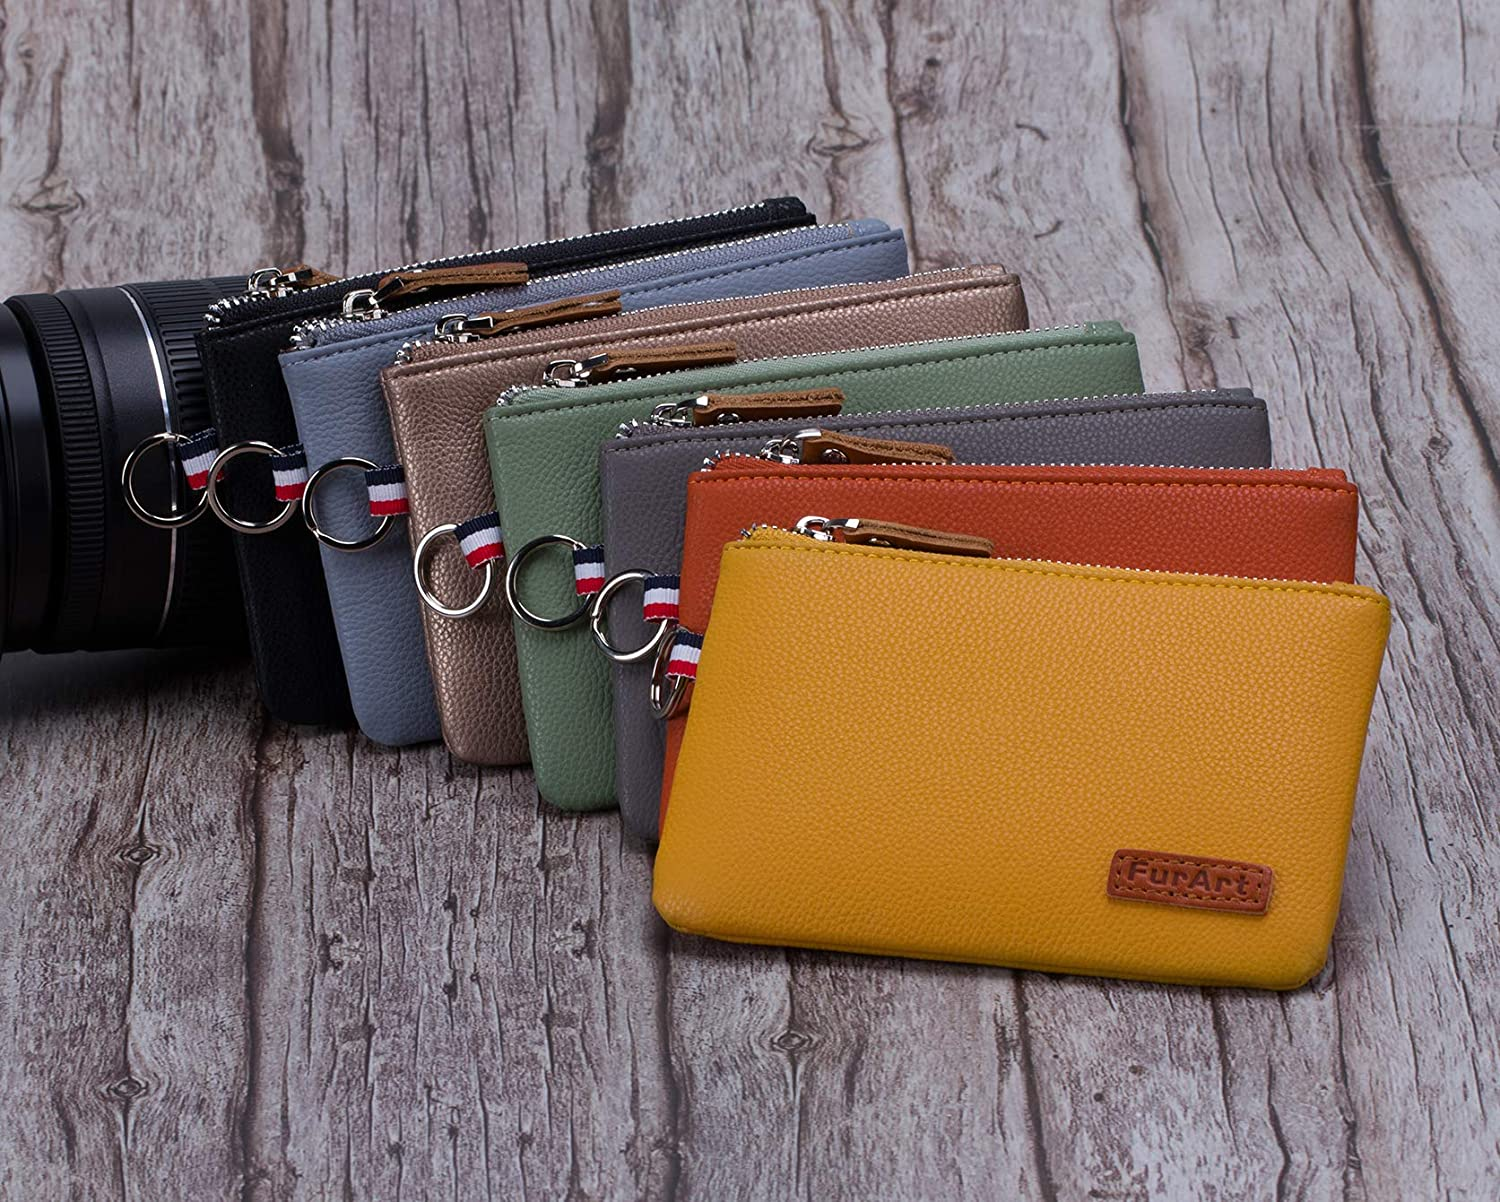 Dual Keyring Change Purse with Zipper Inner Pocket FurArt Coin Purse Soft Coin Pouch Mini Size